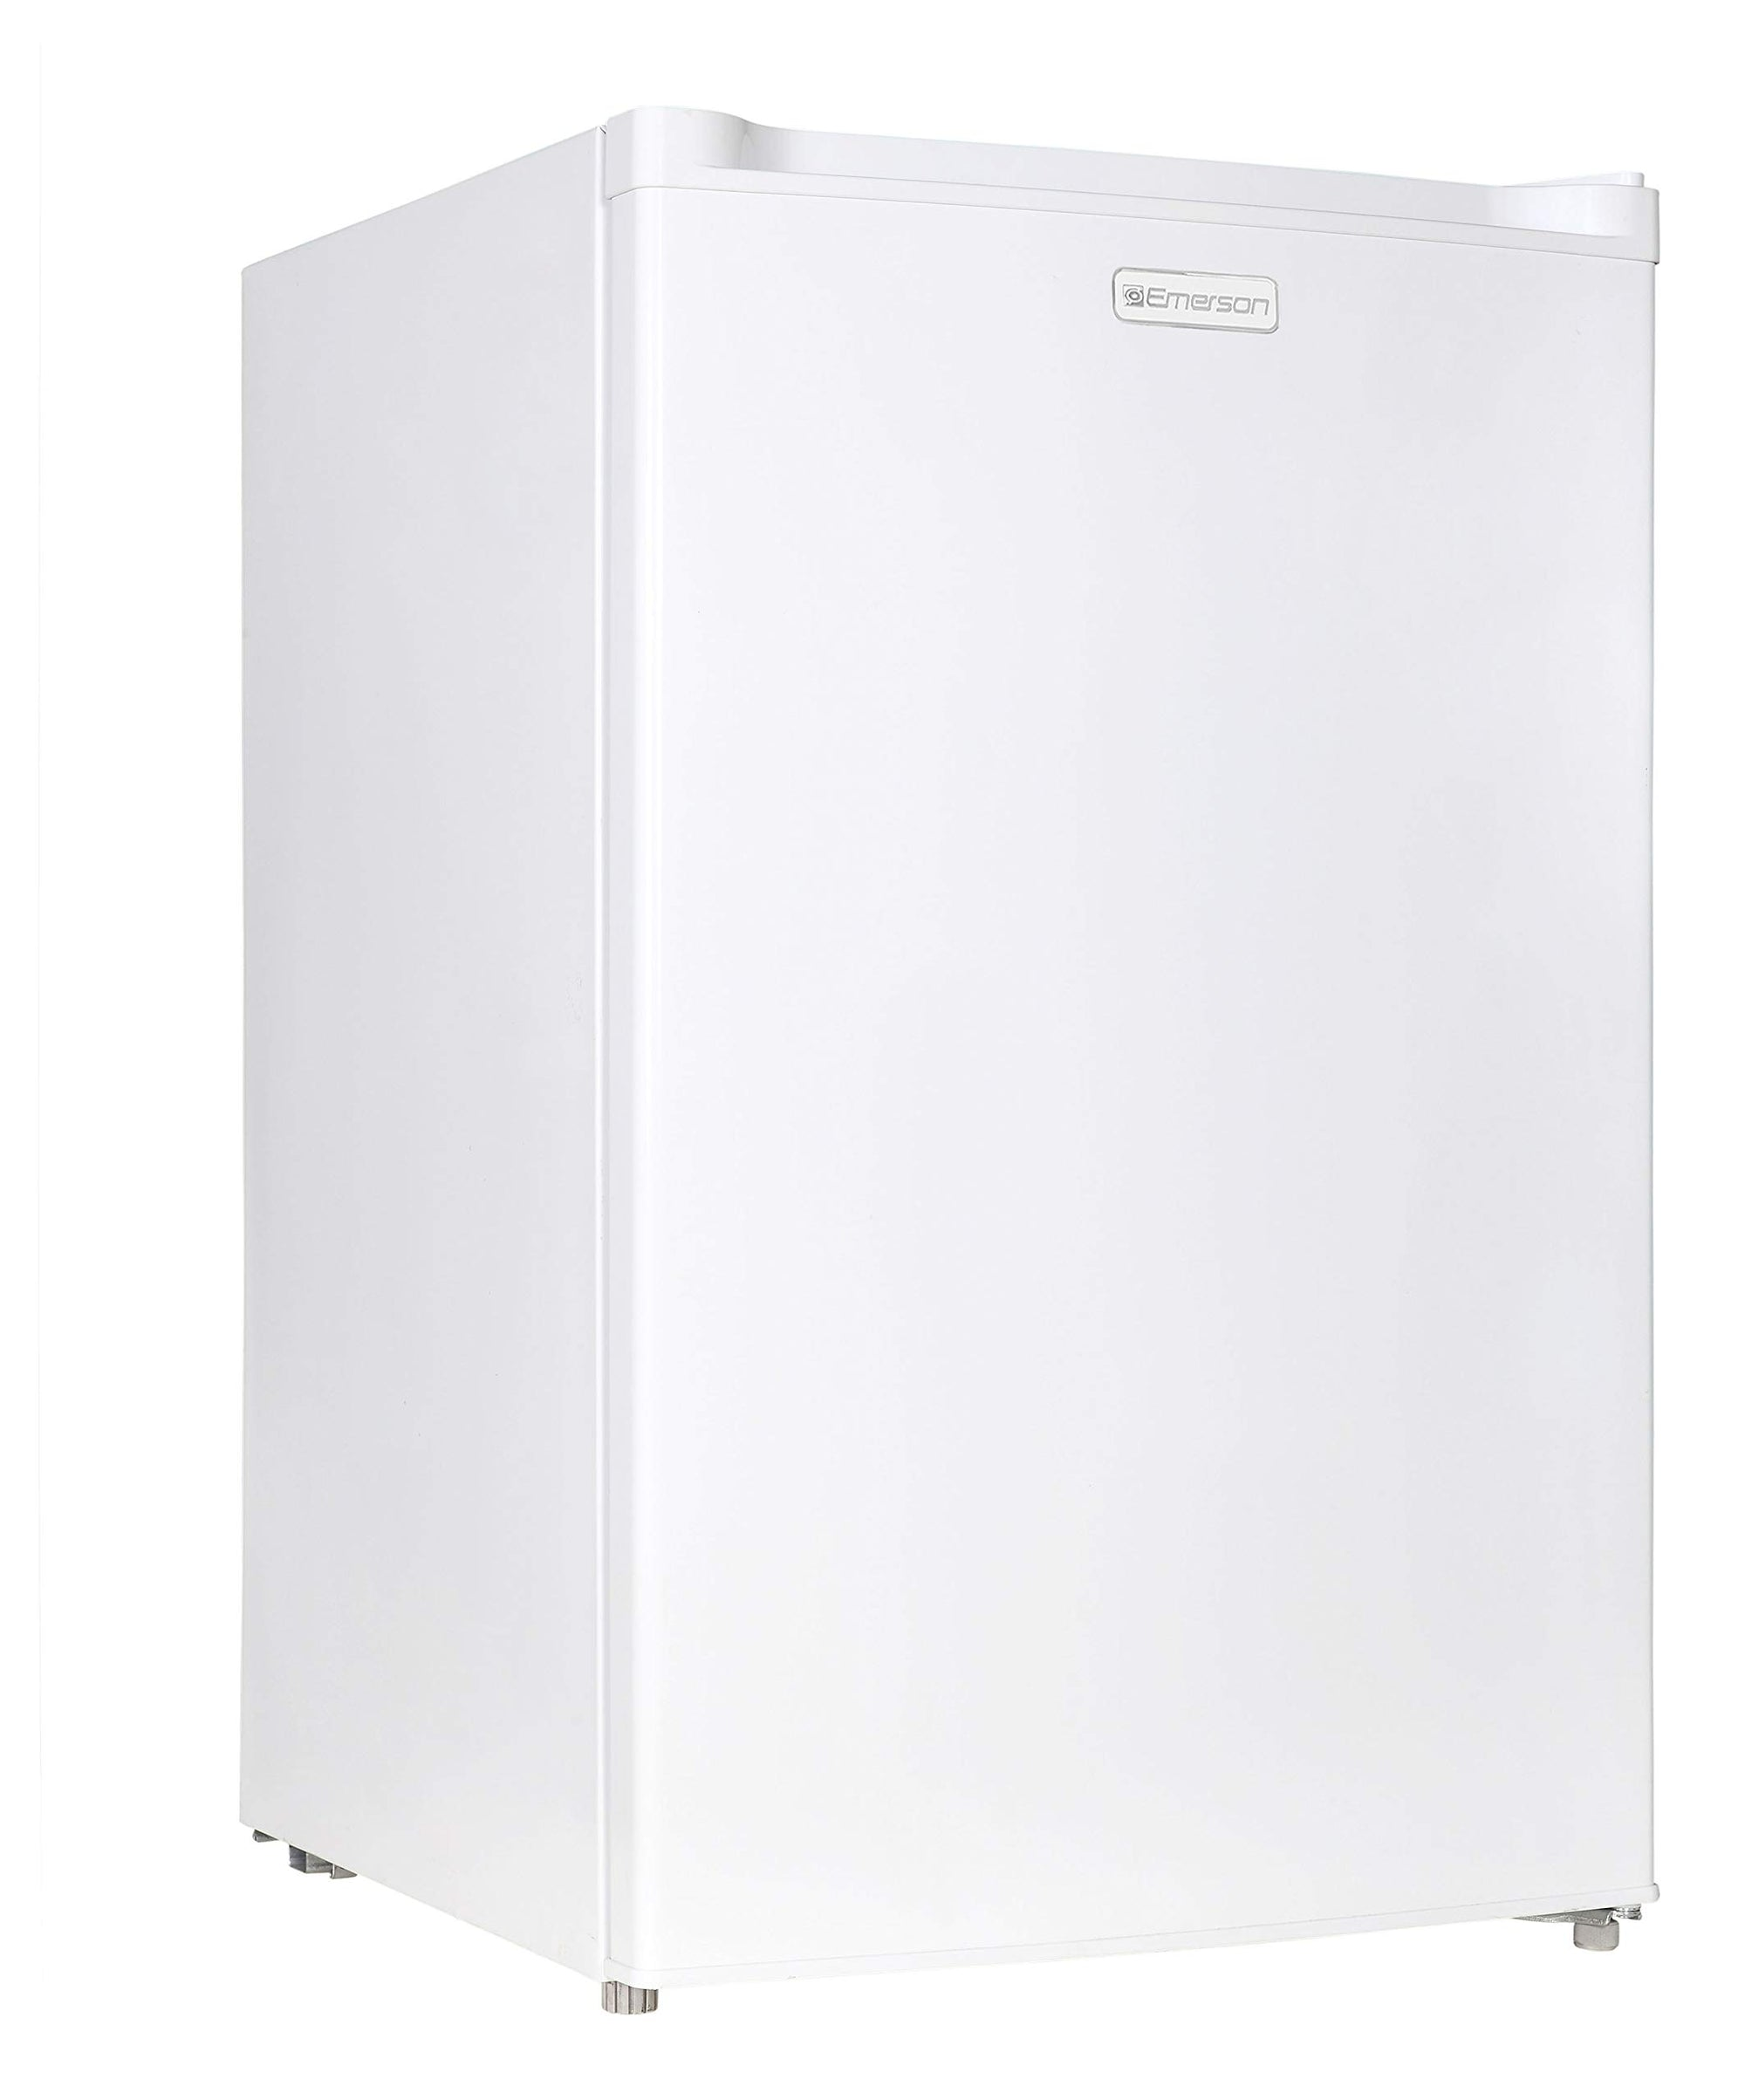 Emerson CR440WE 4.4 Cubic Foot Compact Single Door Refrigerator, White